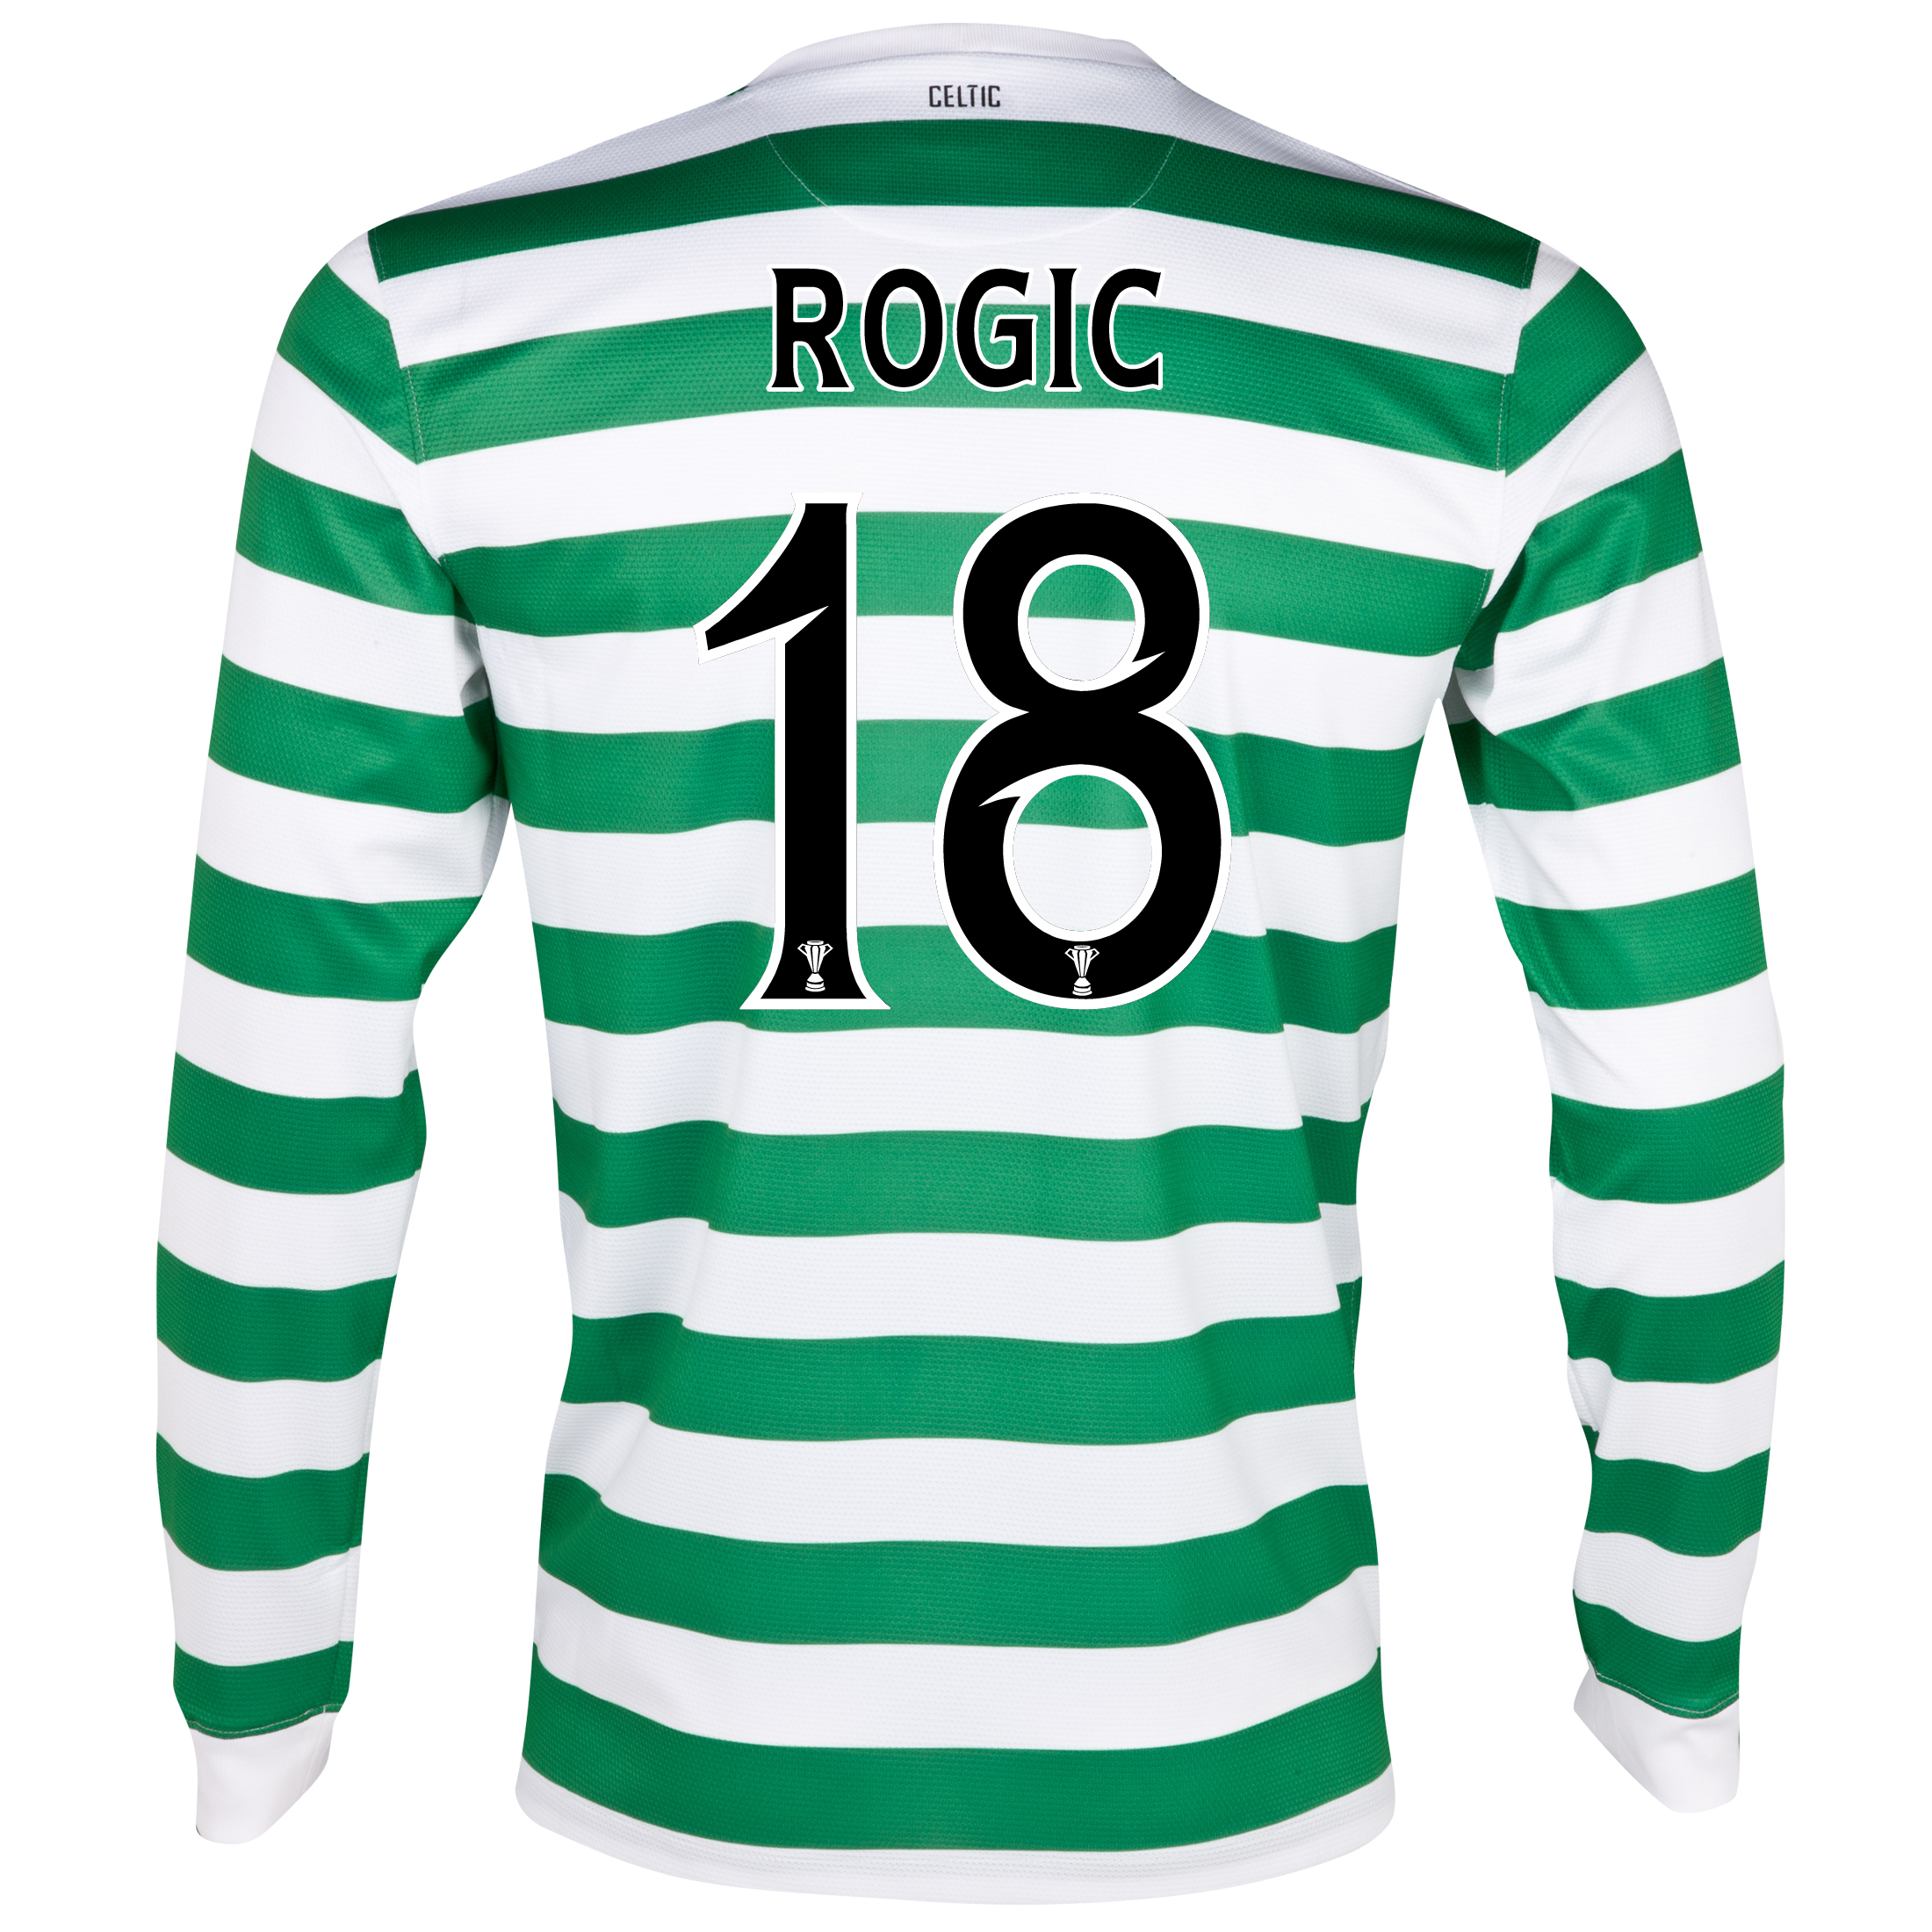 Celtic Home Shirt 2012/13 - Long Sleeved - No Sponsor with Rogic 18 printing